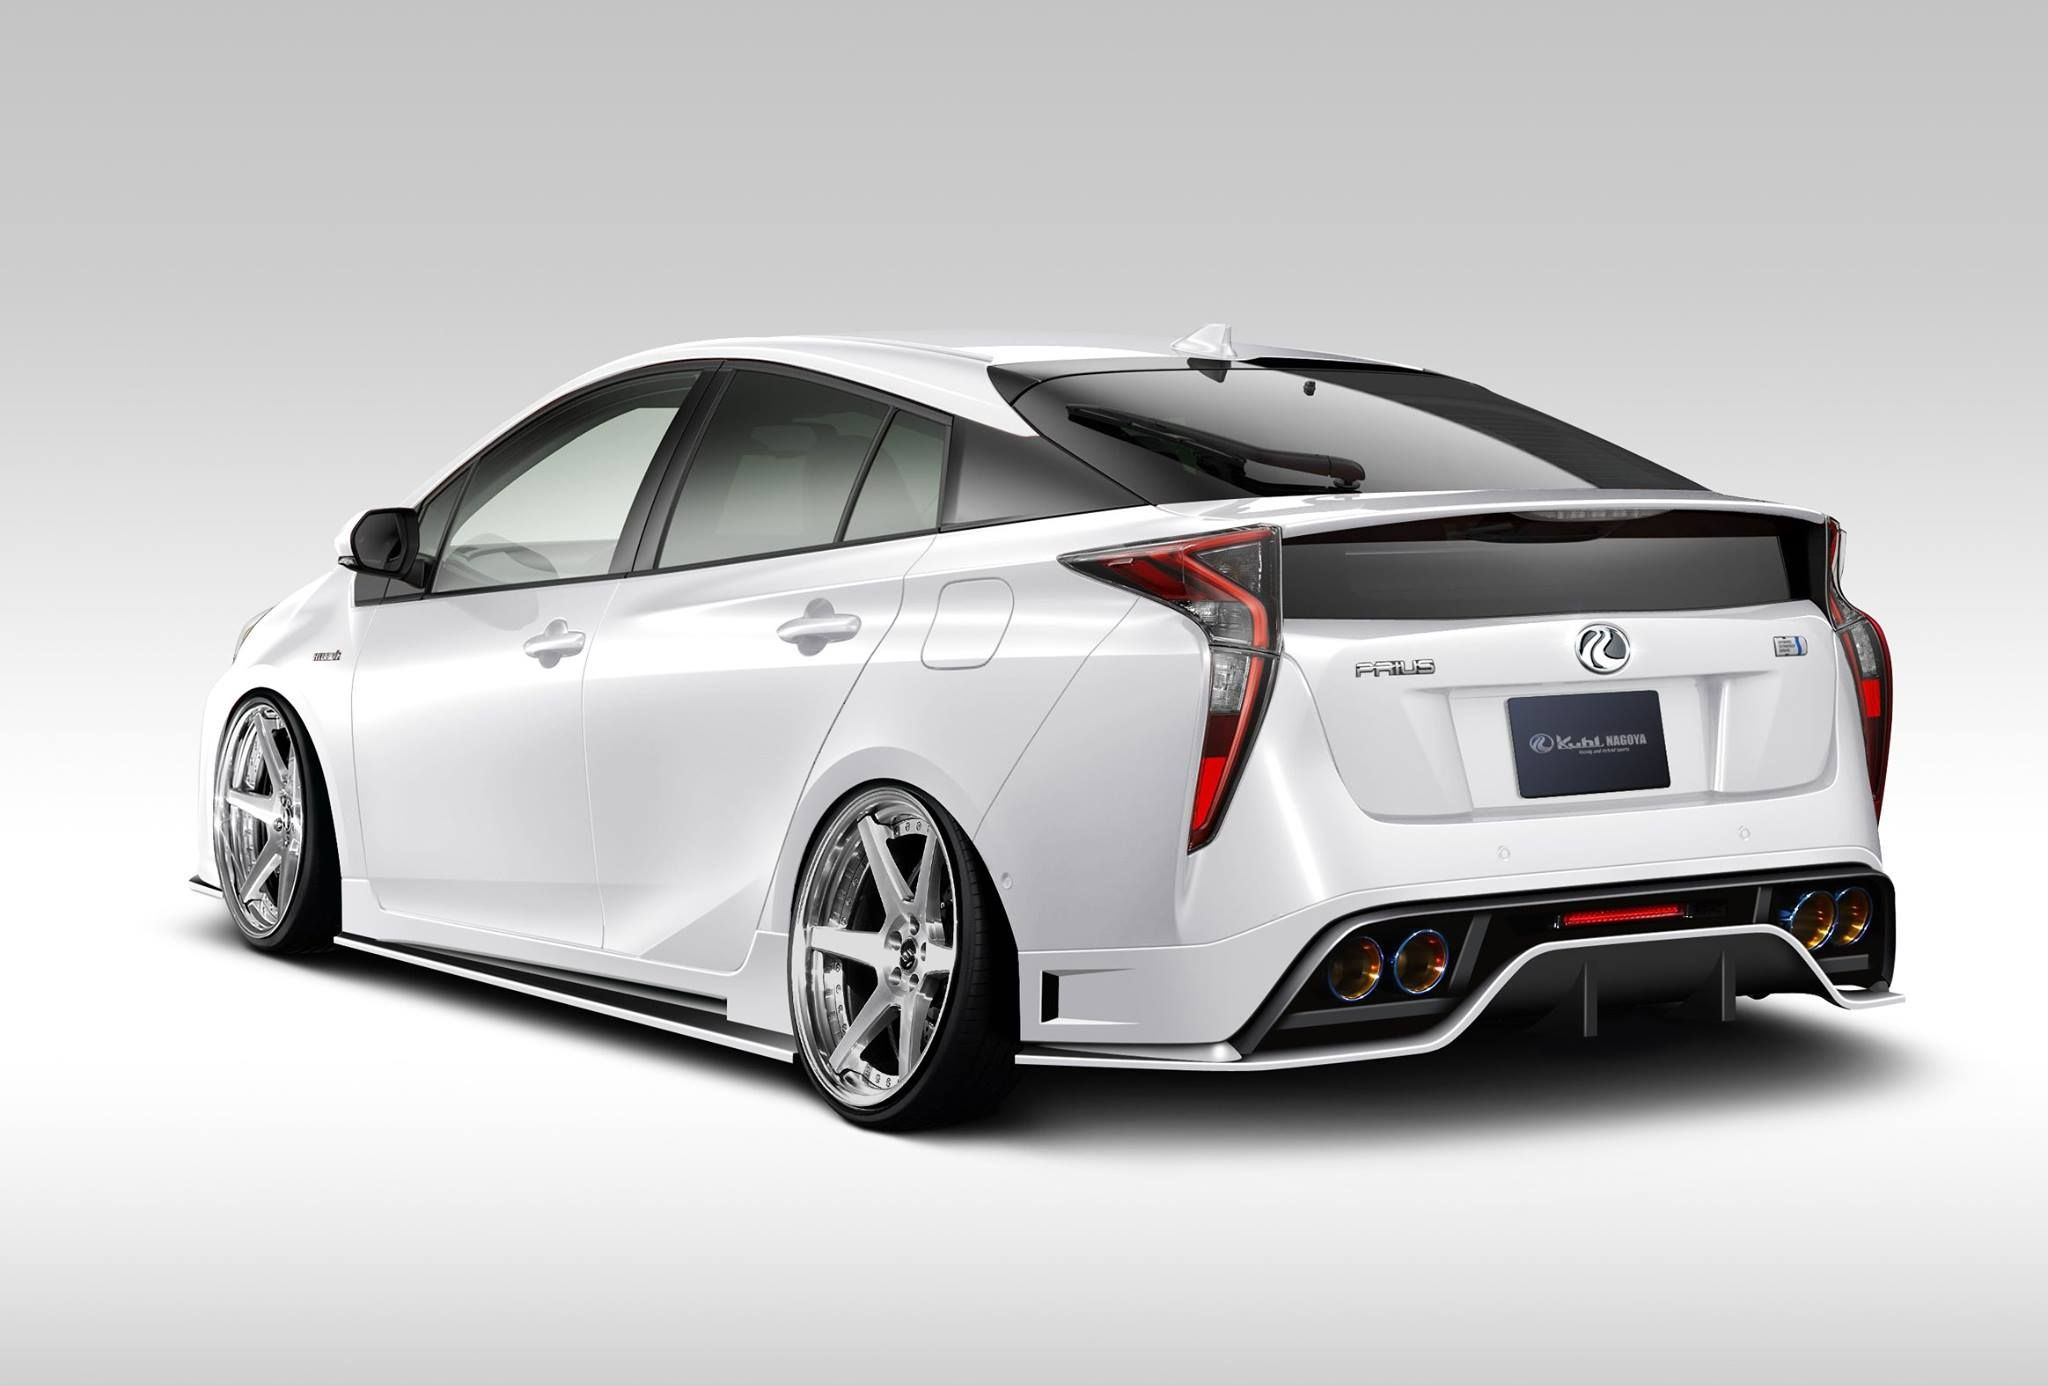 2016 Toyota Prius Getting Hellaflush Body Kit From Kuhl Racing